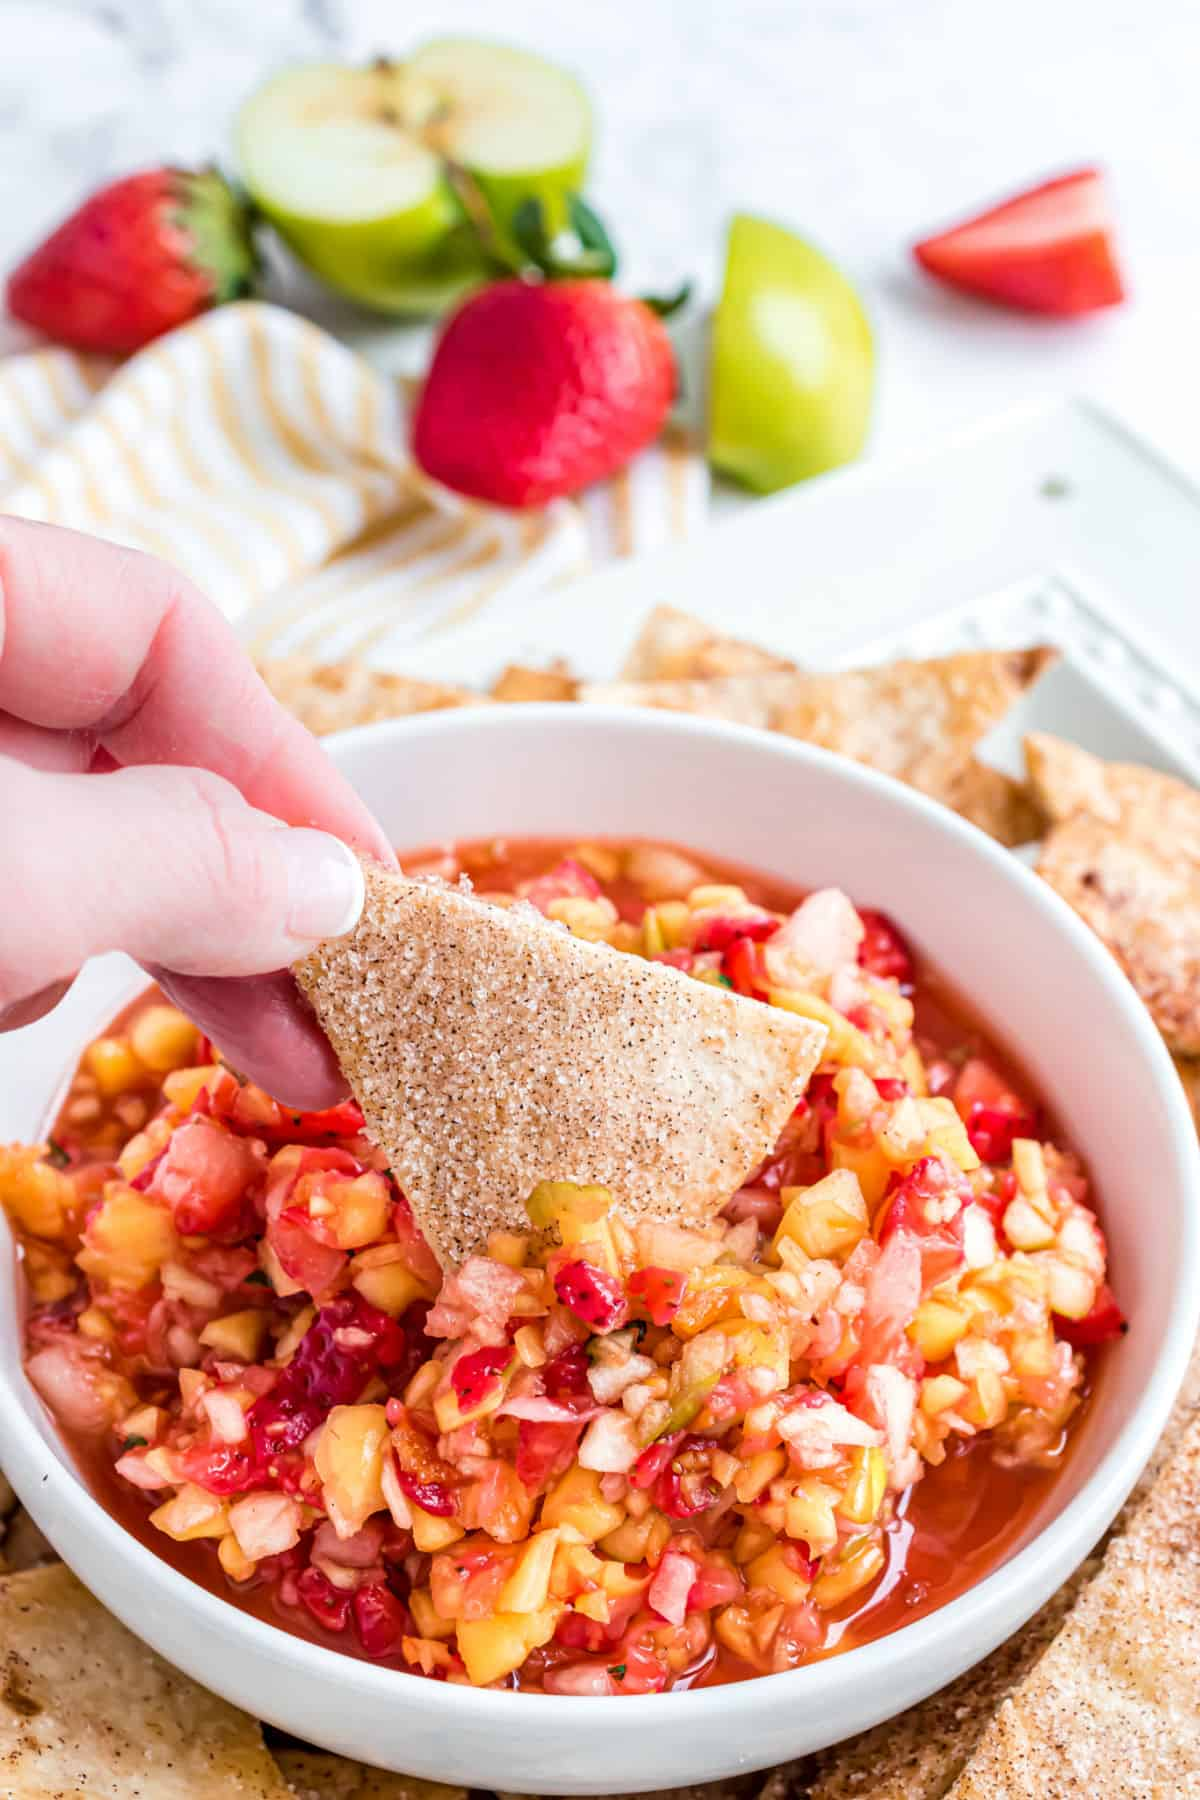 Fruit salsa in a white bowl with homemade cinnamon tortilla chips.